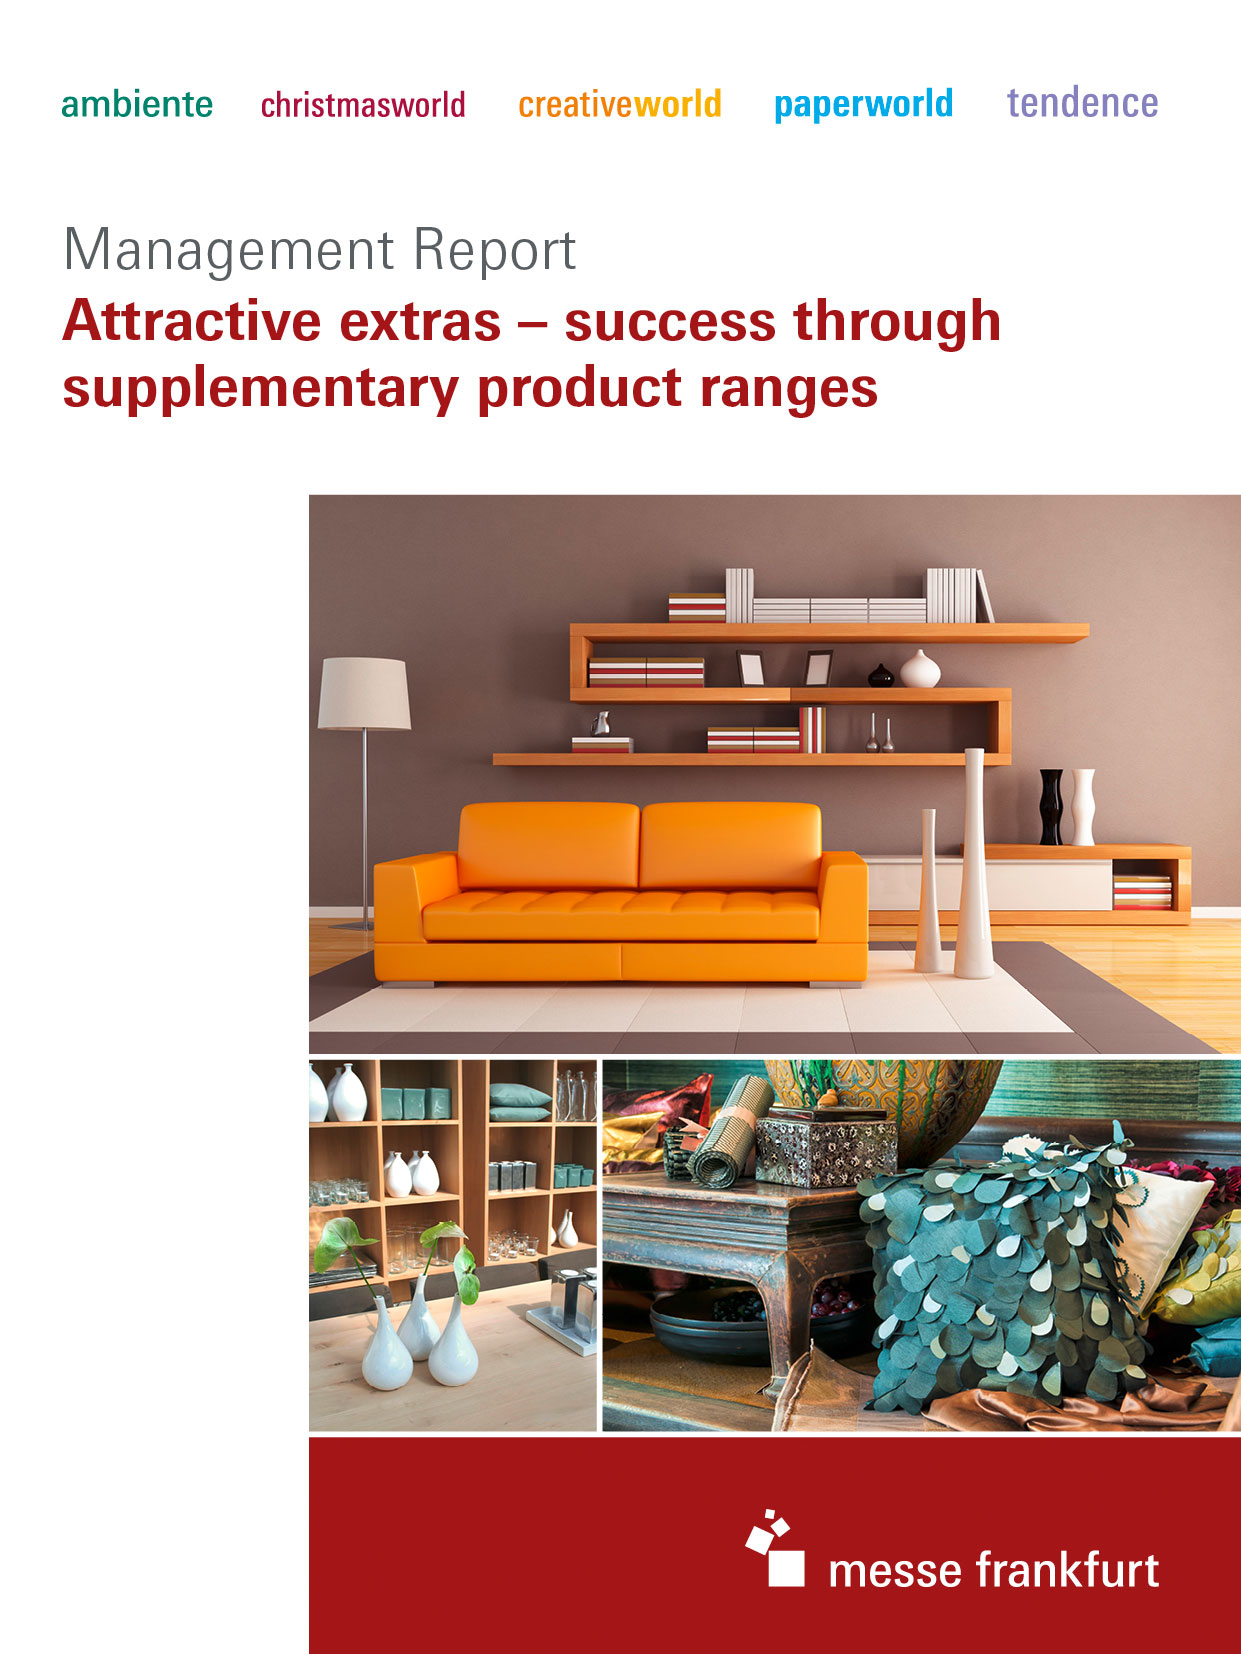 Management Report: Attractive extras – success through supplementary product ranges